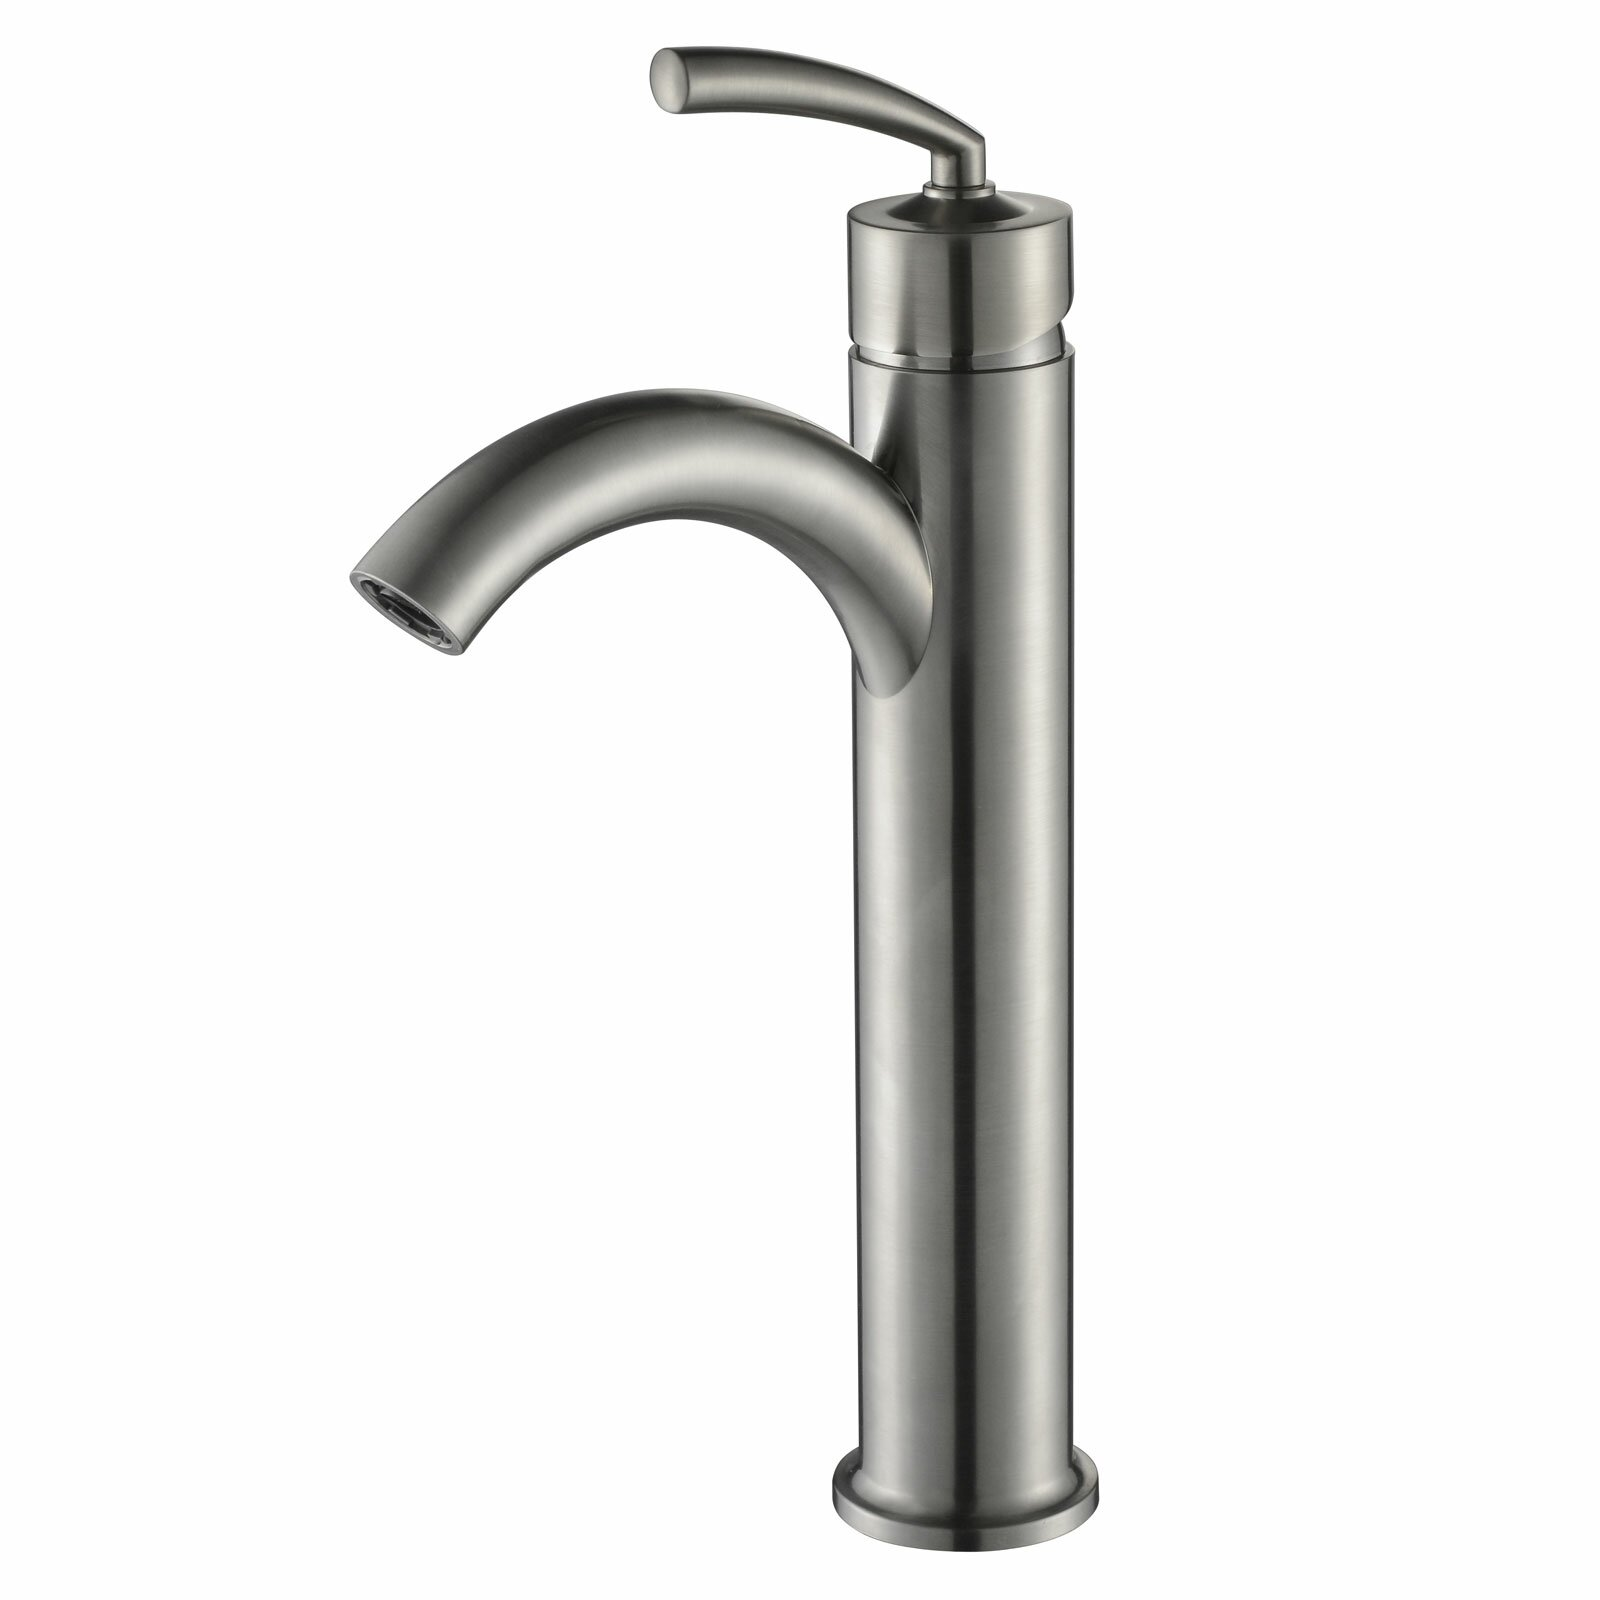 Single Lever Bathroom Faucets: Elite Single Handle Bathroom Faucet With U Arched Spout